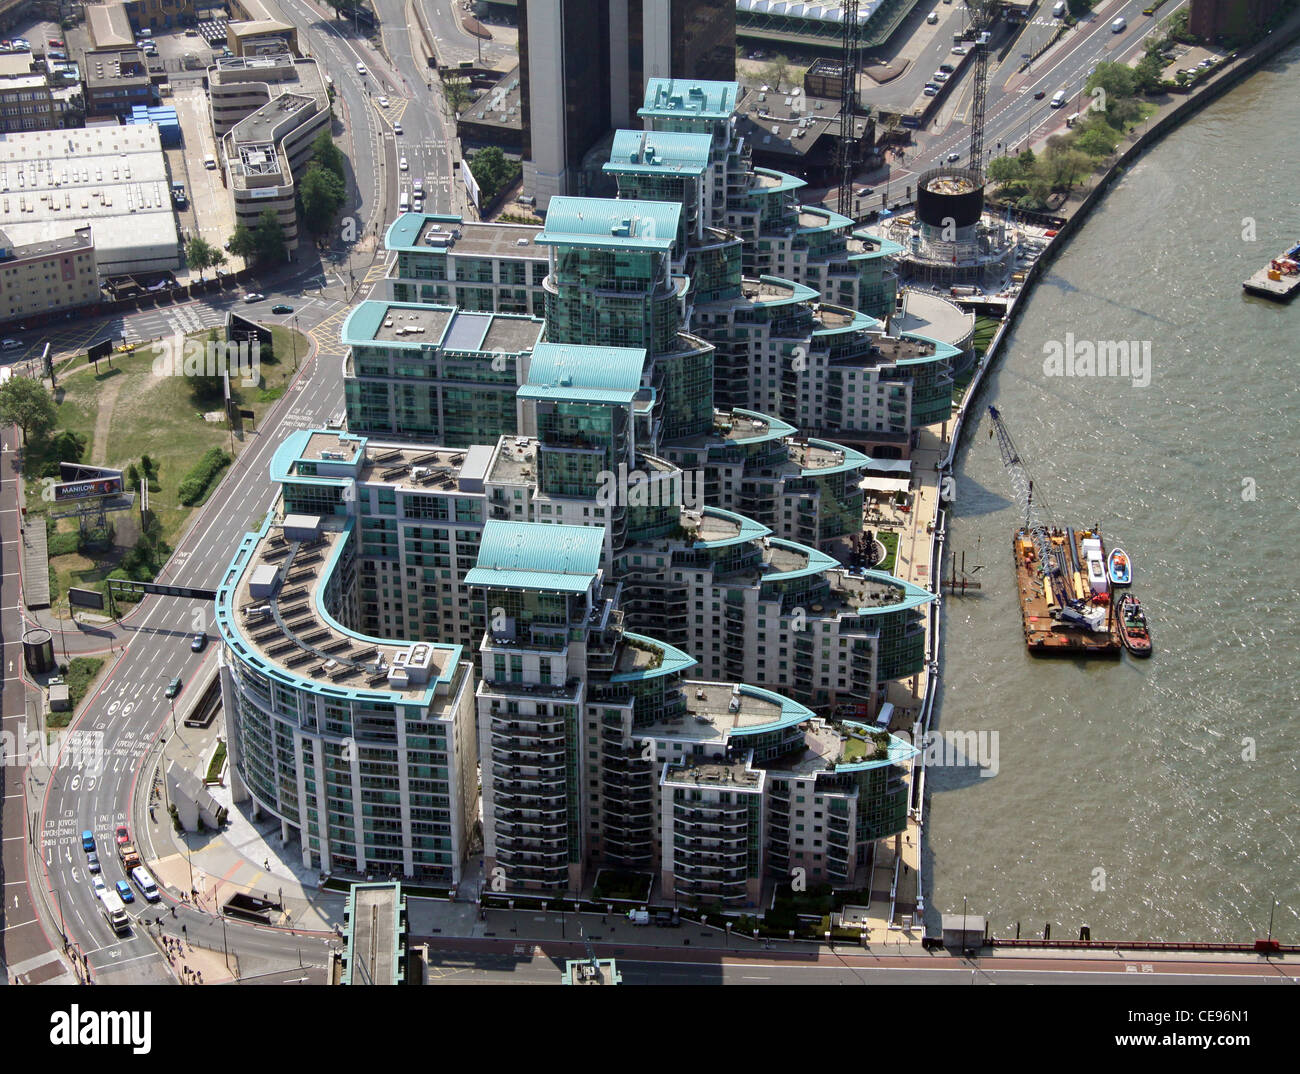 Aerial image of apartments at Vauxhall Cross, London SE11 - Stock Image